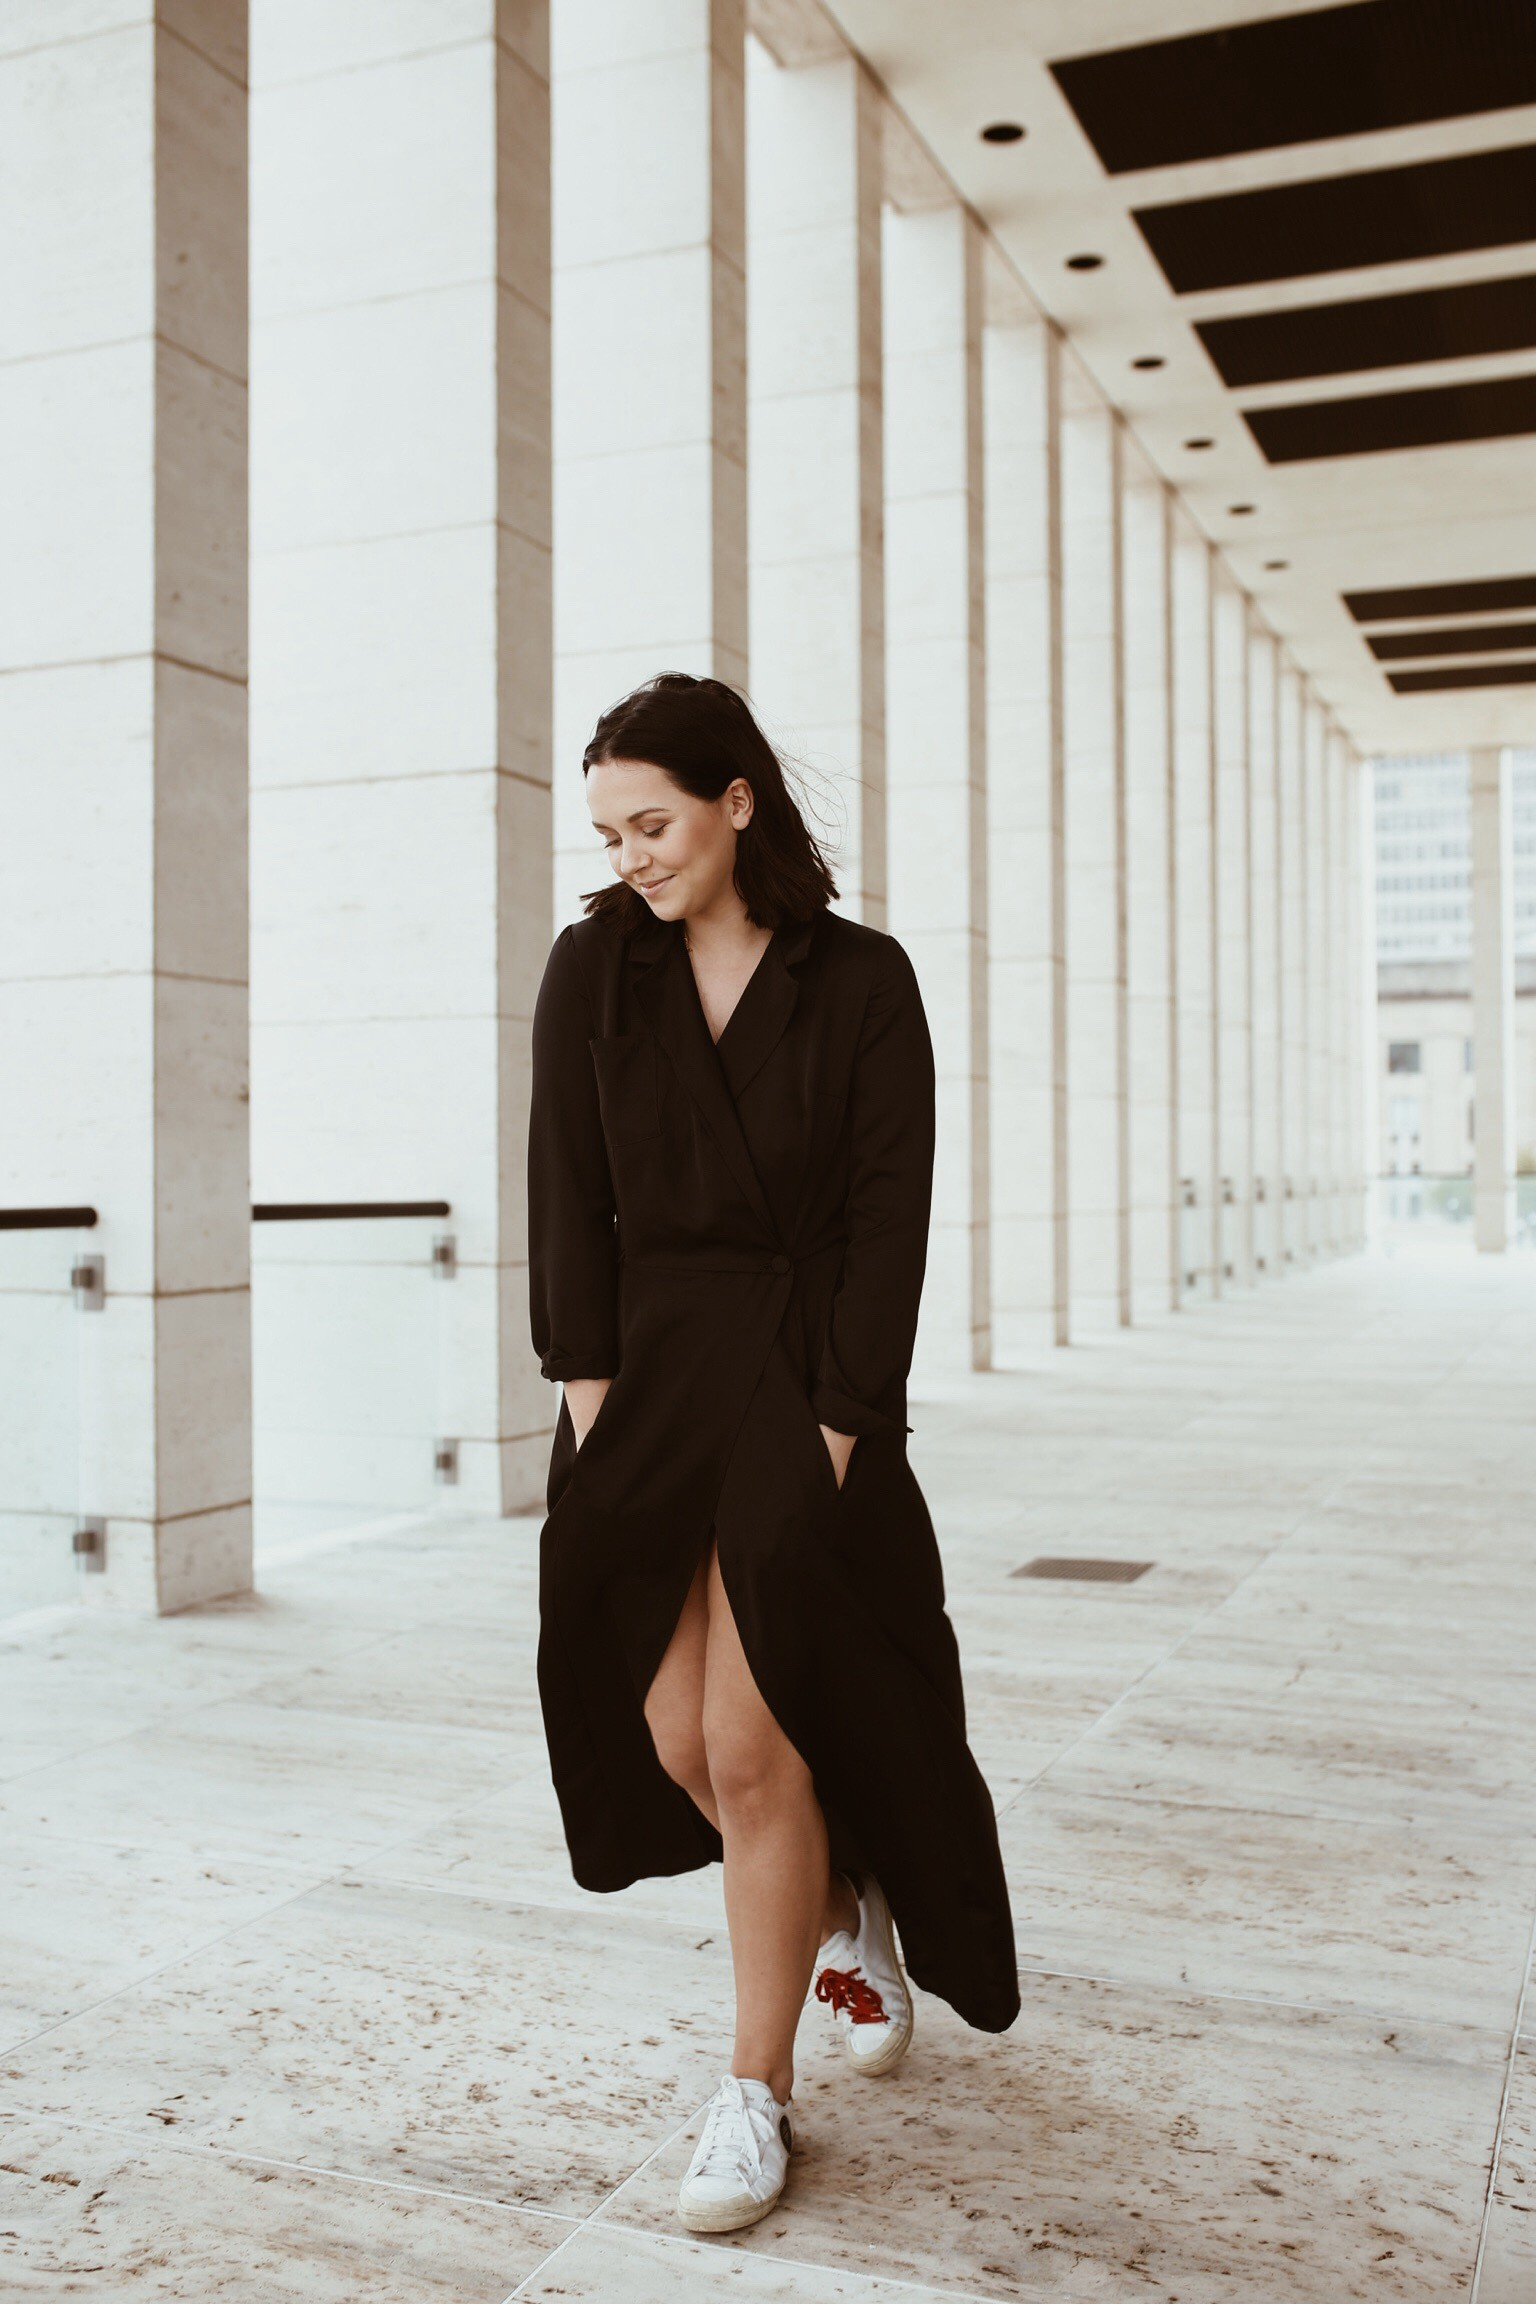 Alison K. Saylor wearing the black shirt dress by Bastet Noir